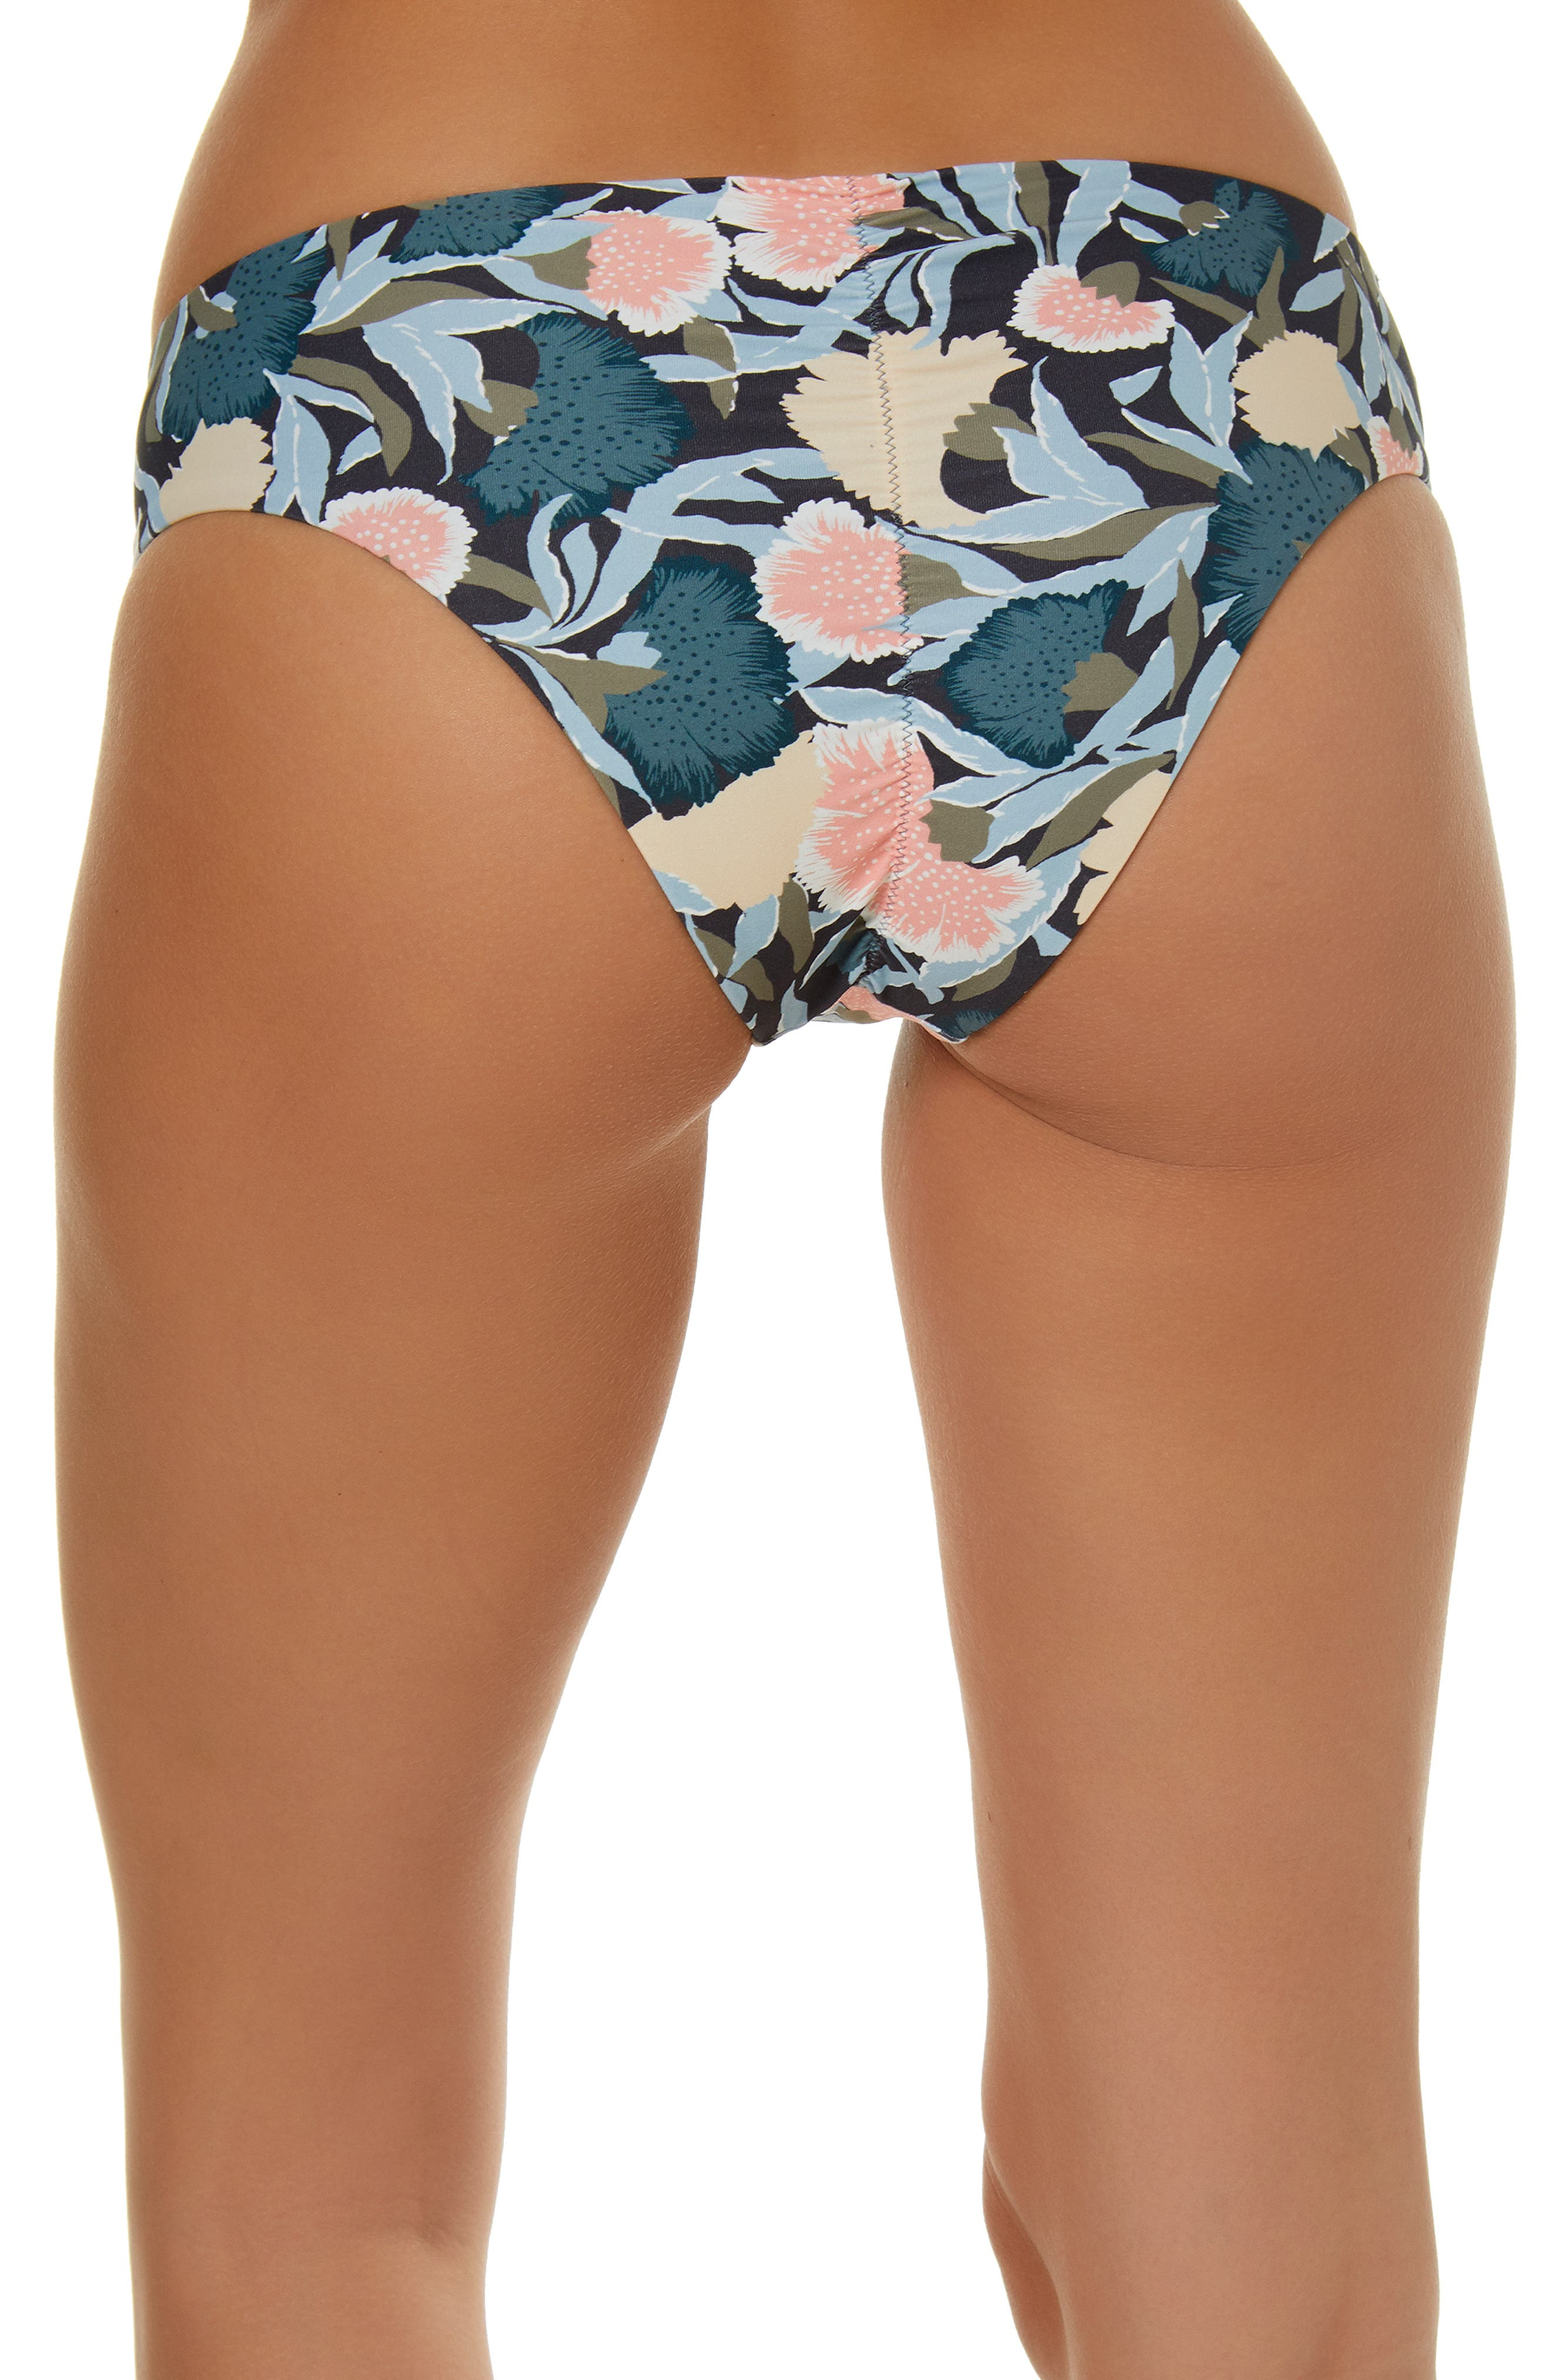 Teegan Hipster Bikini Bottoms,                             Alternate thumbnail 2, color,                             MULTI